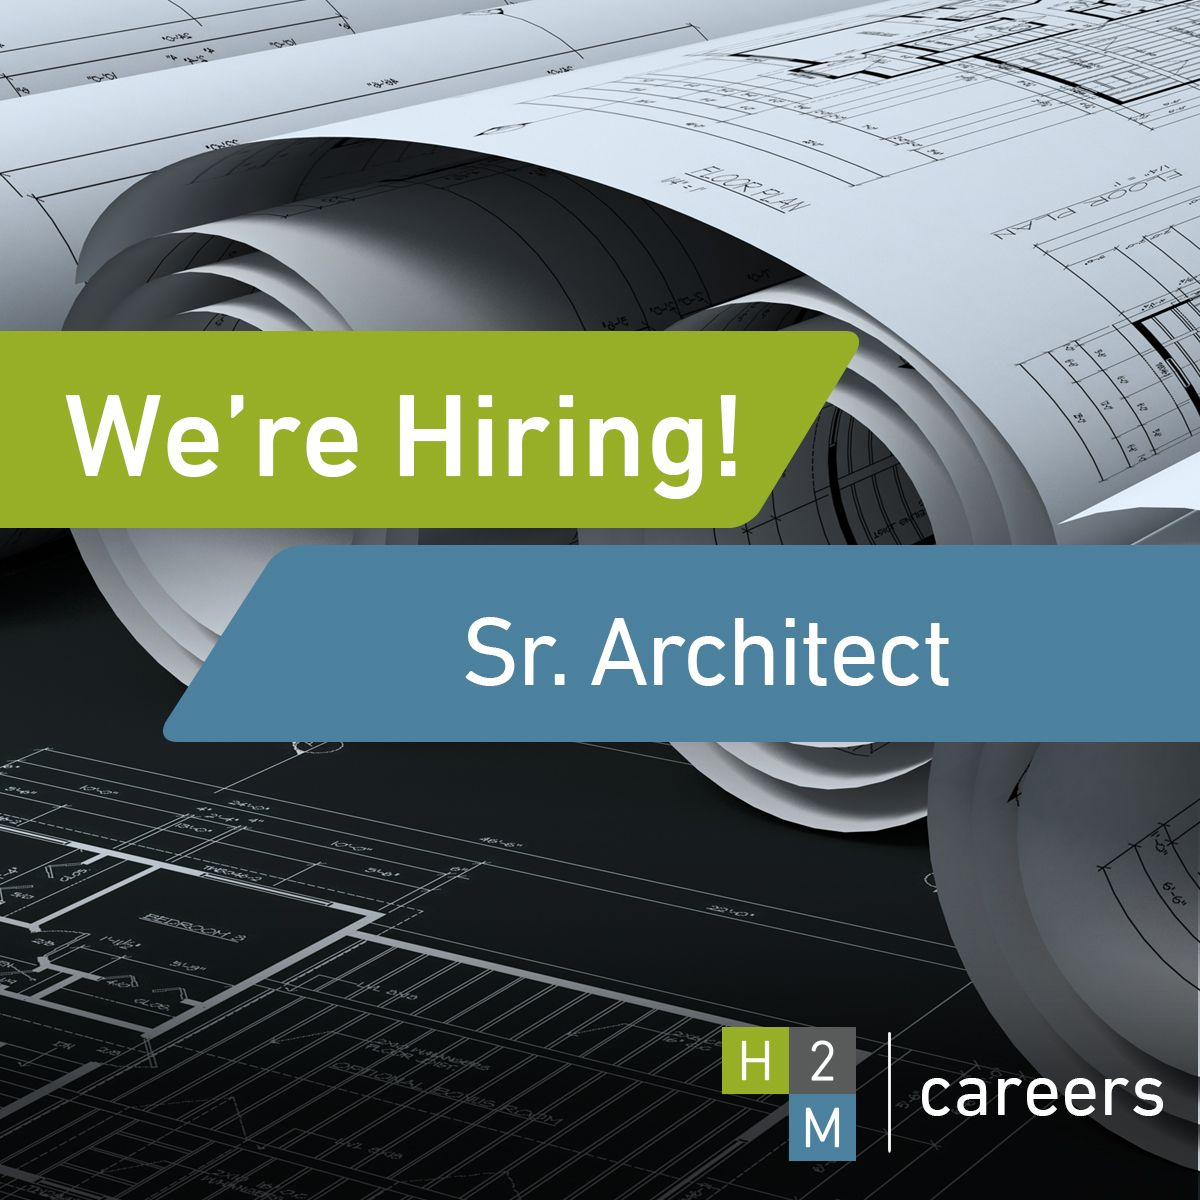 We're Hiring a Senior Architect with 10+ years of